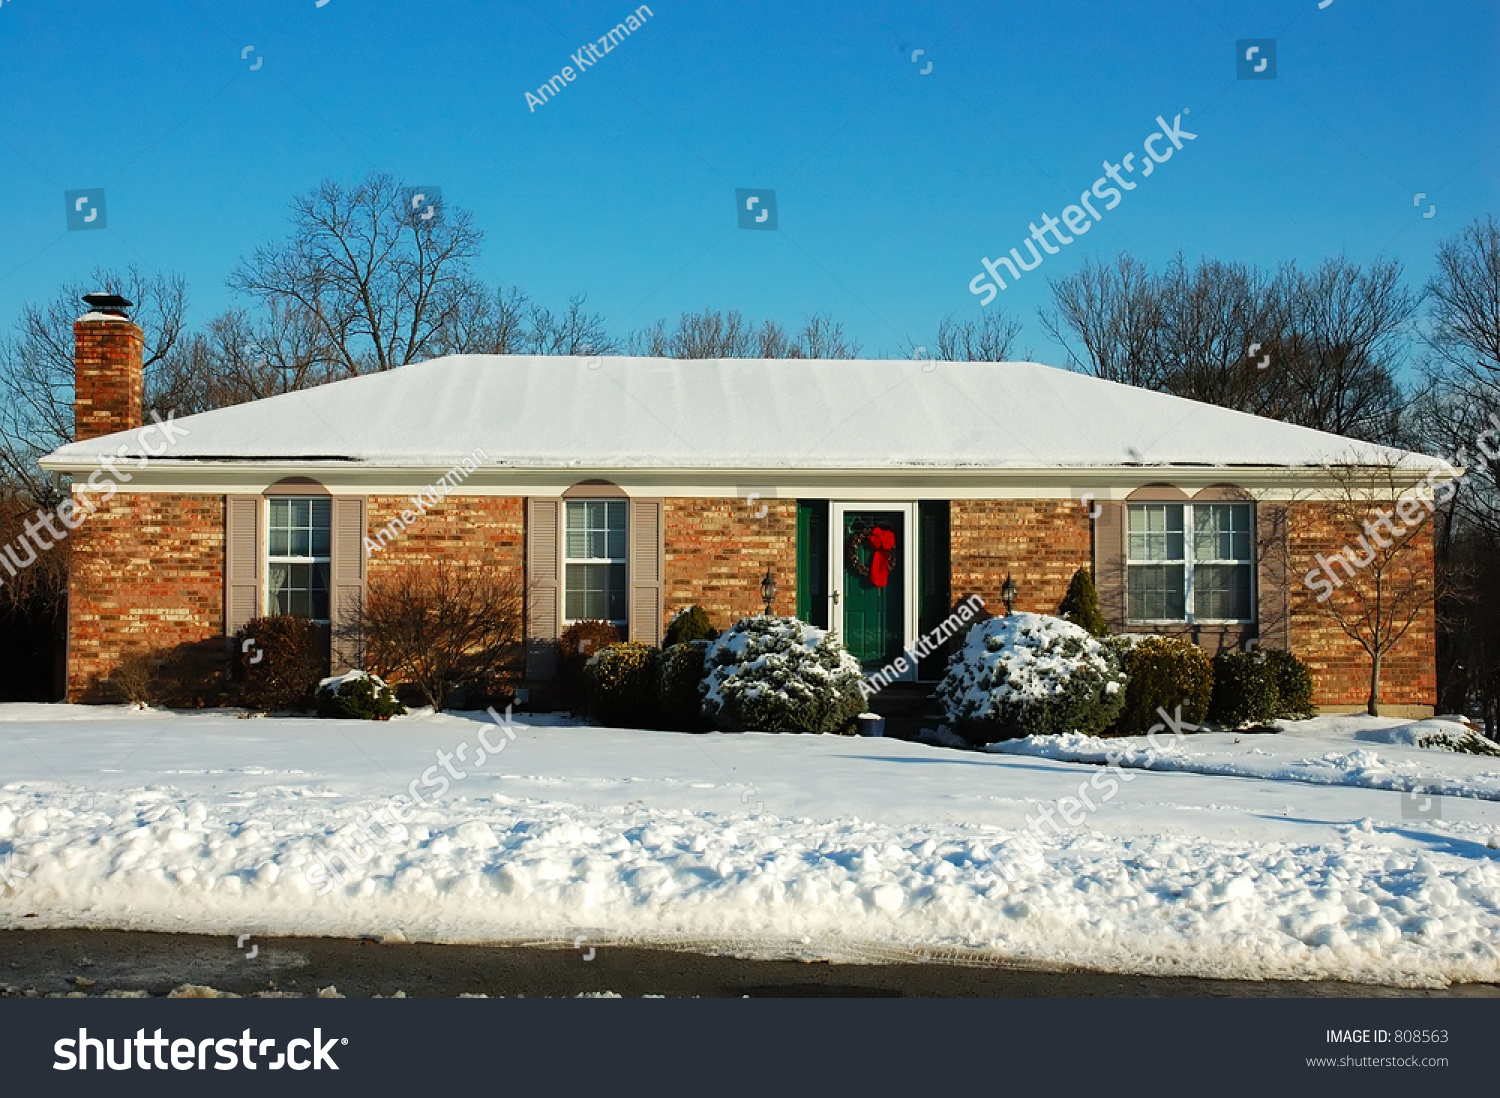 Brilliant House Single Story Brick American House Sitting Stock Photo Edit Now